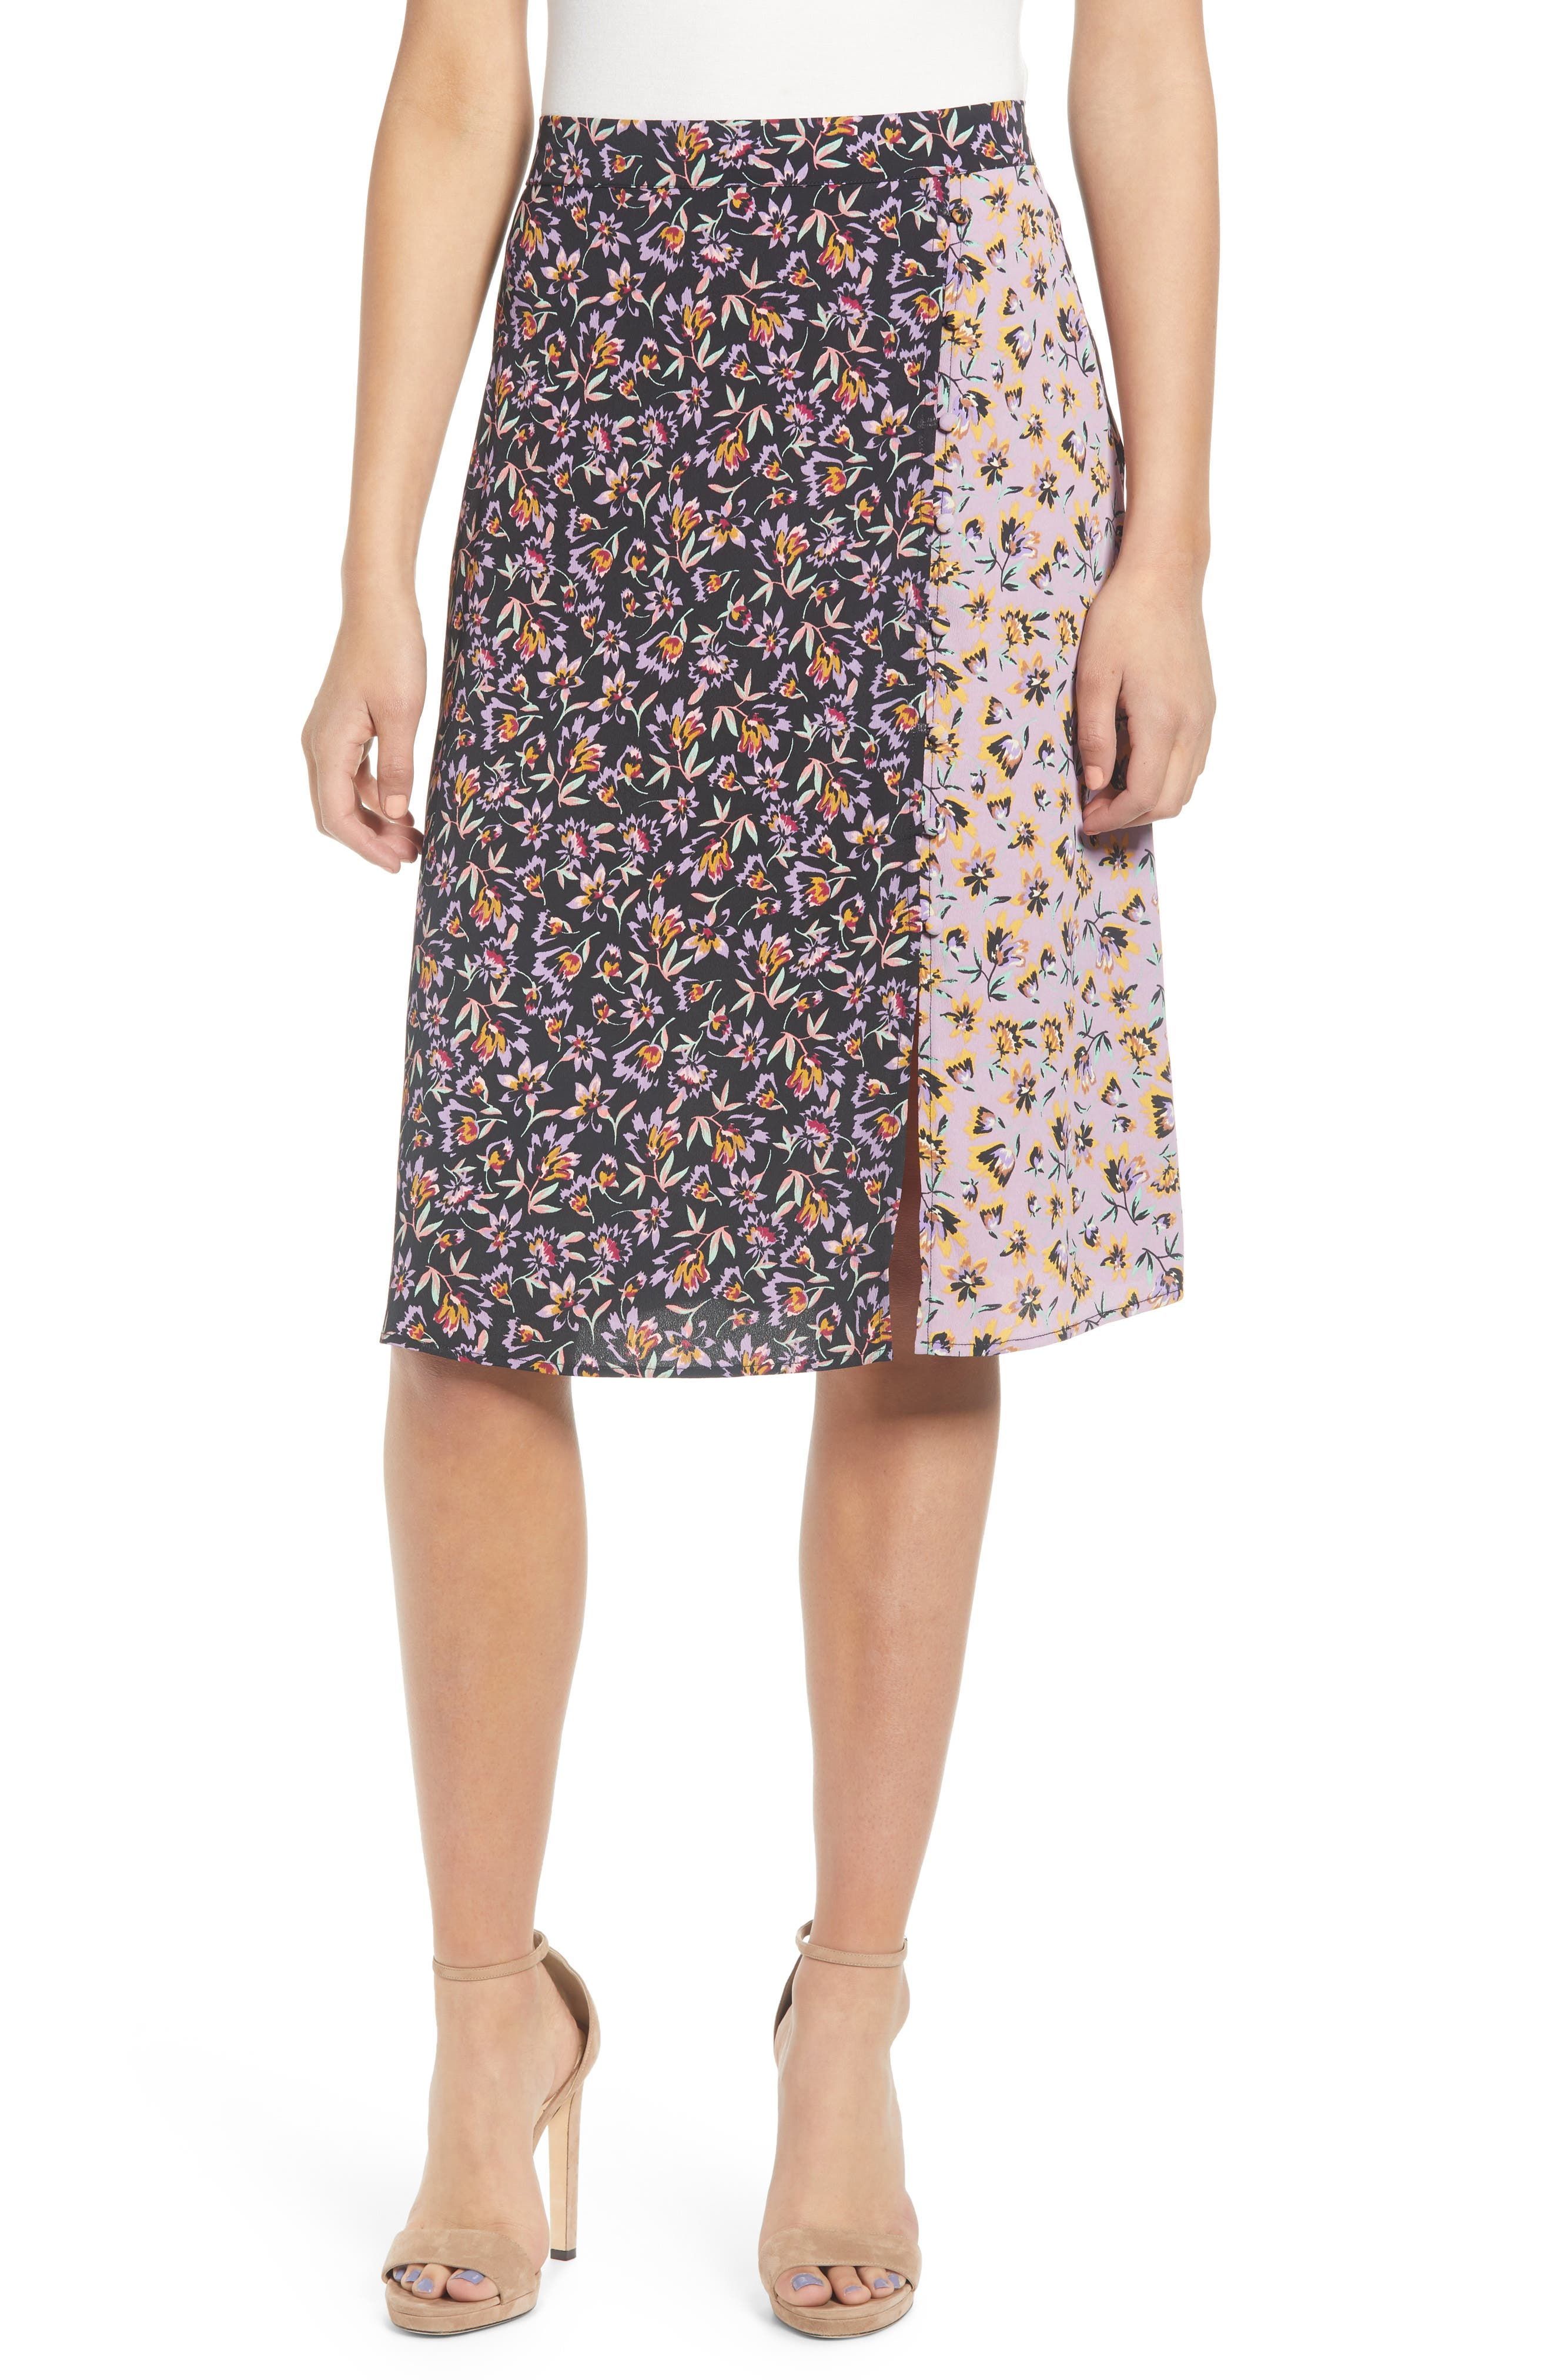 Band Of Gypsies New Orleans Mixed Floral Print Skirt, Black